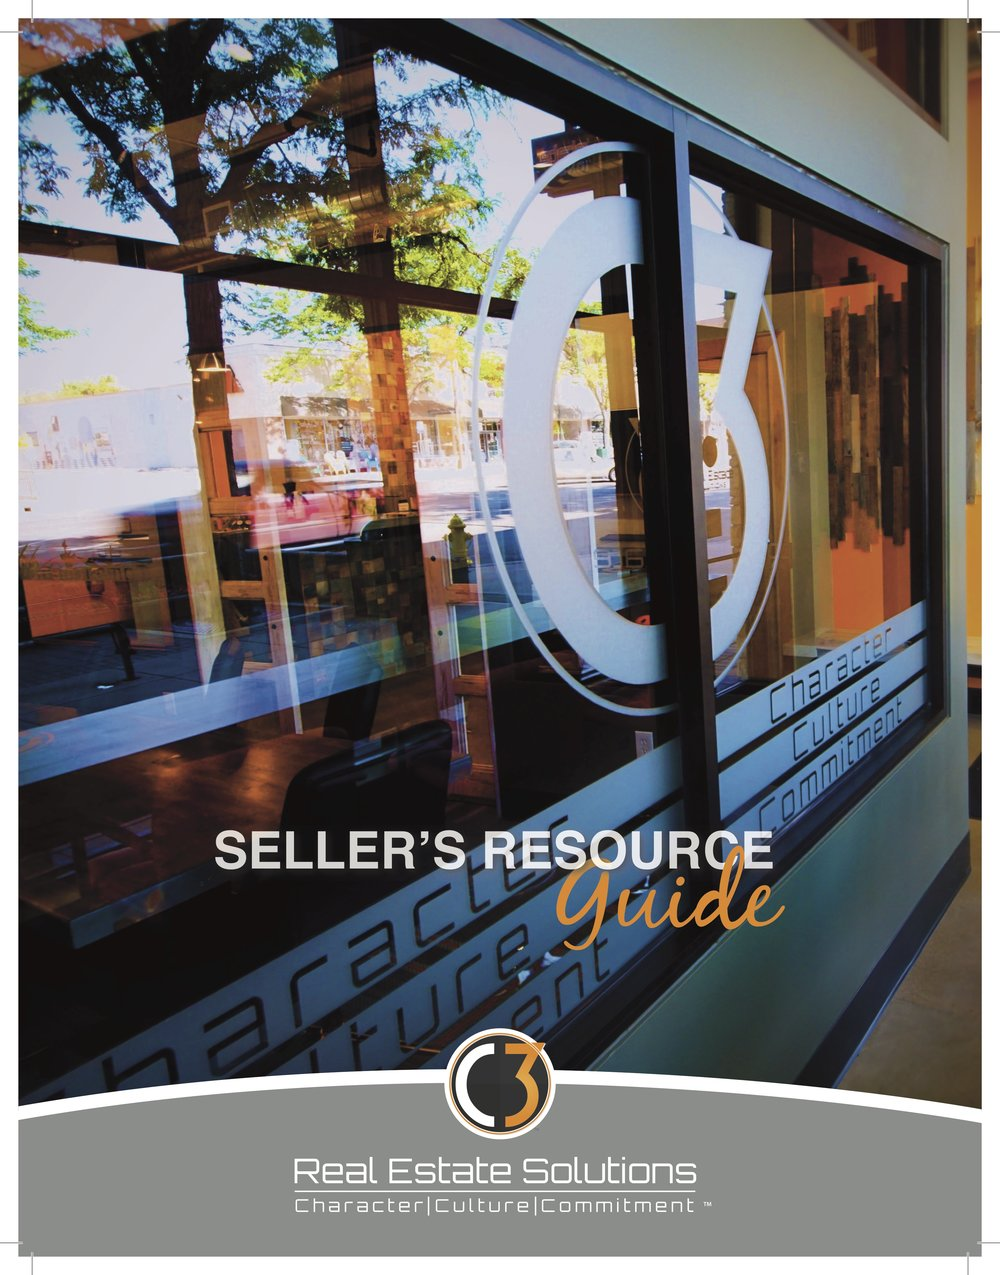 My Seller's Resource Guide -